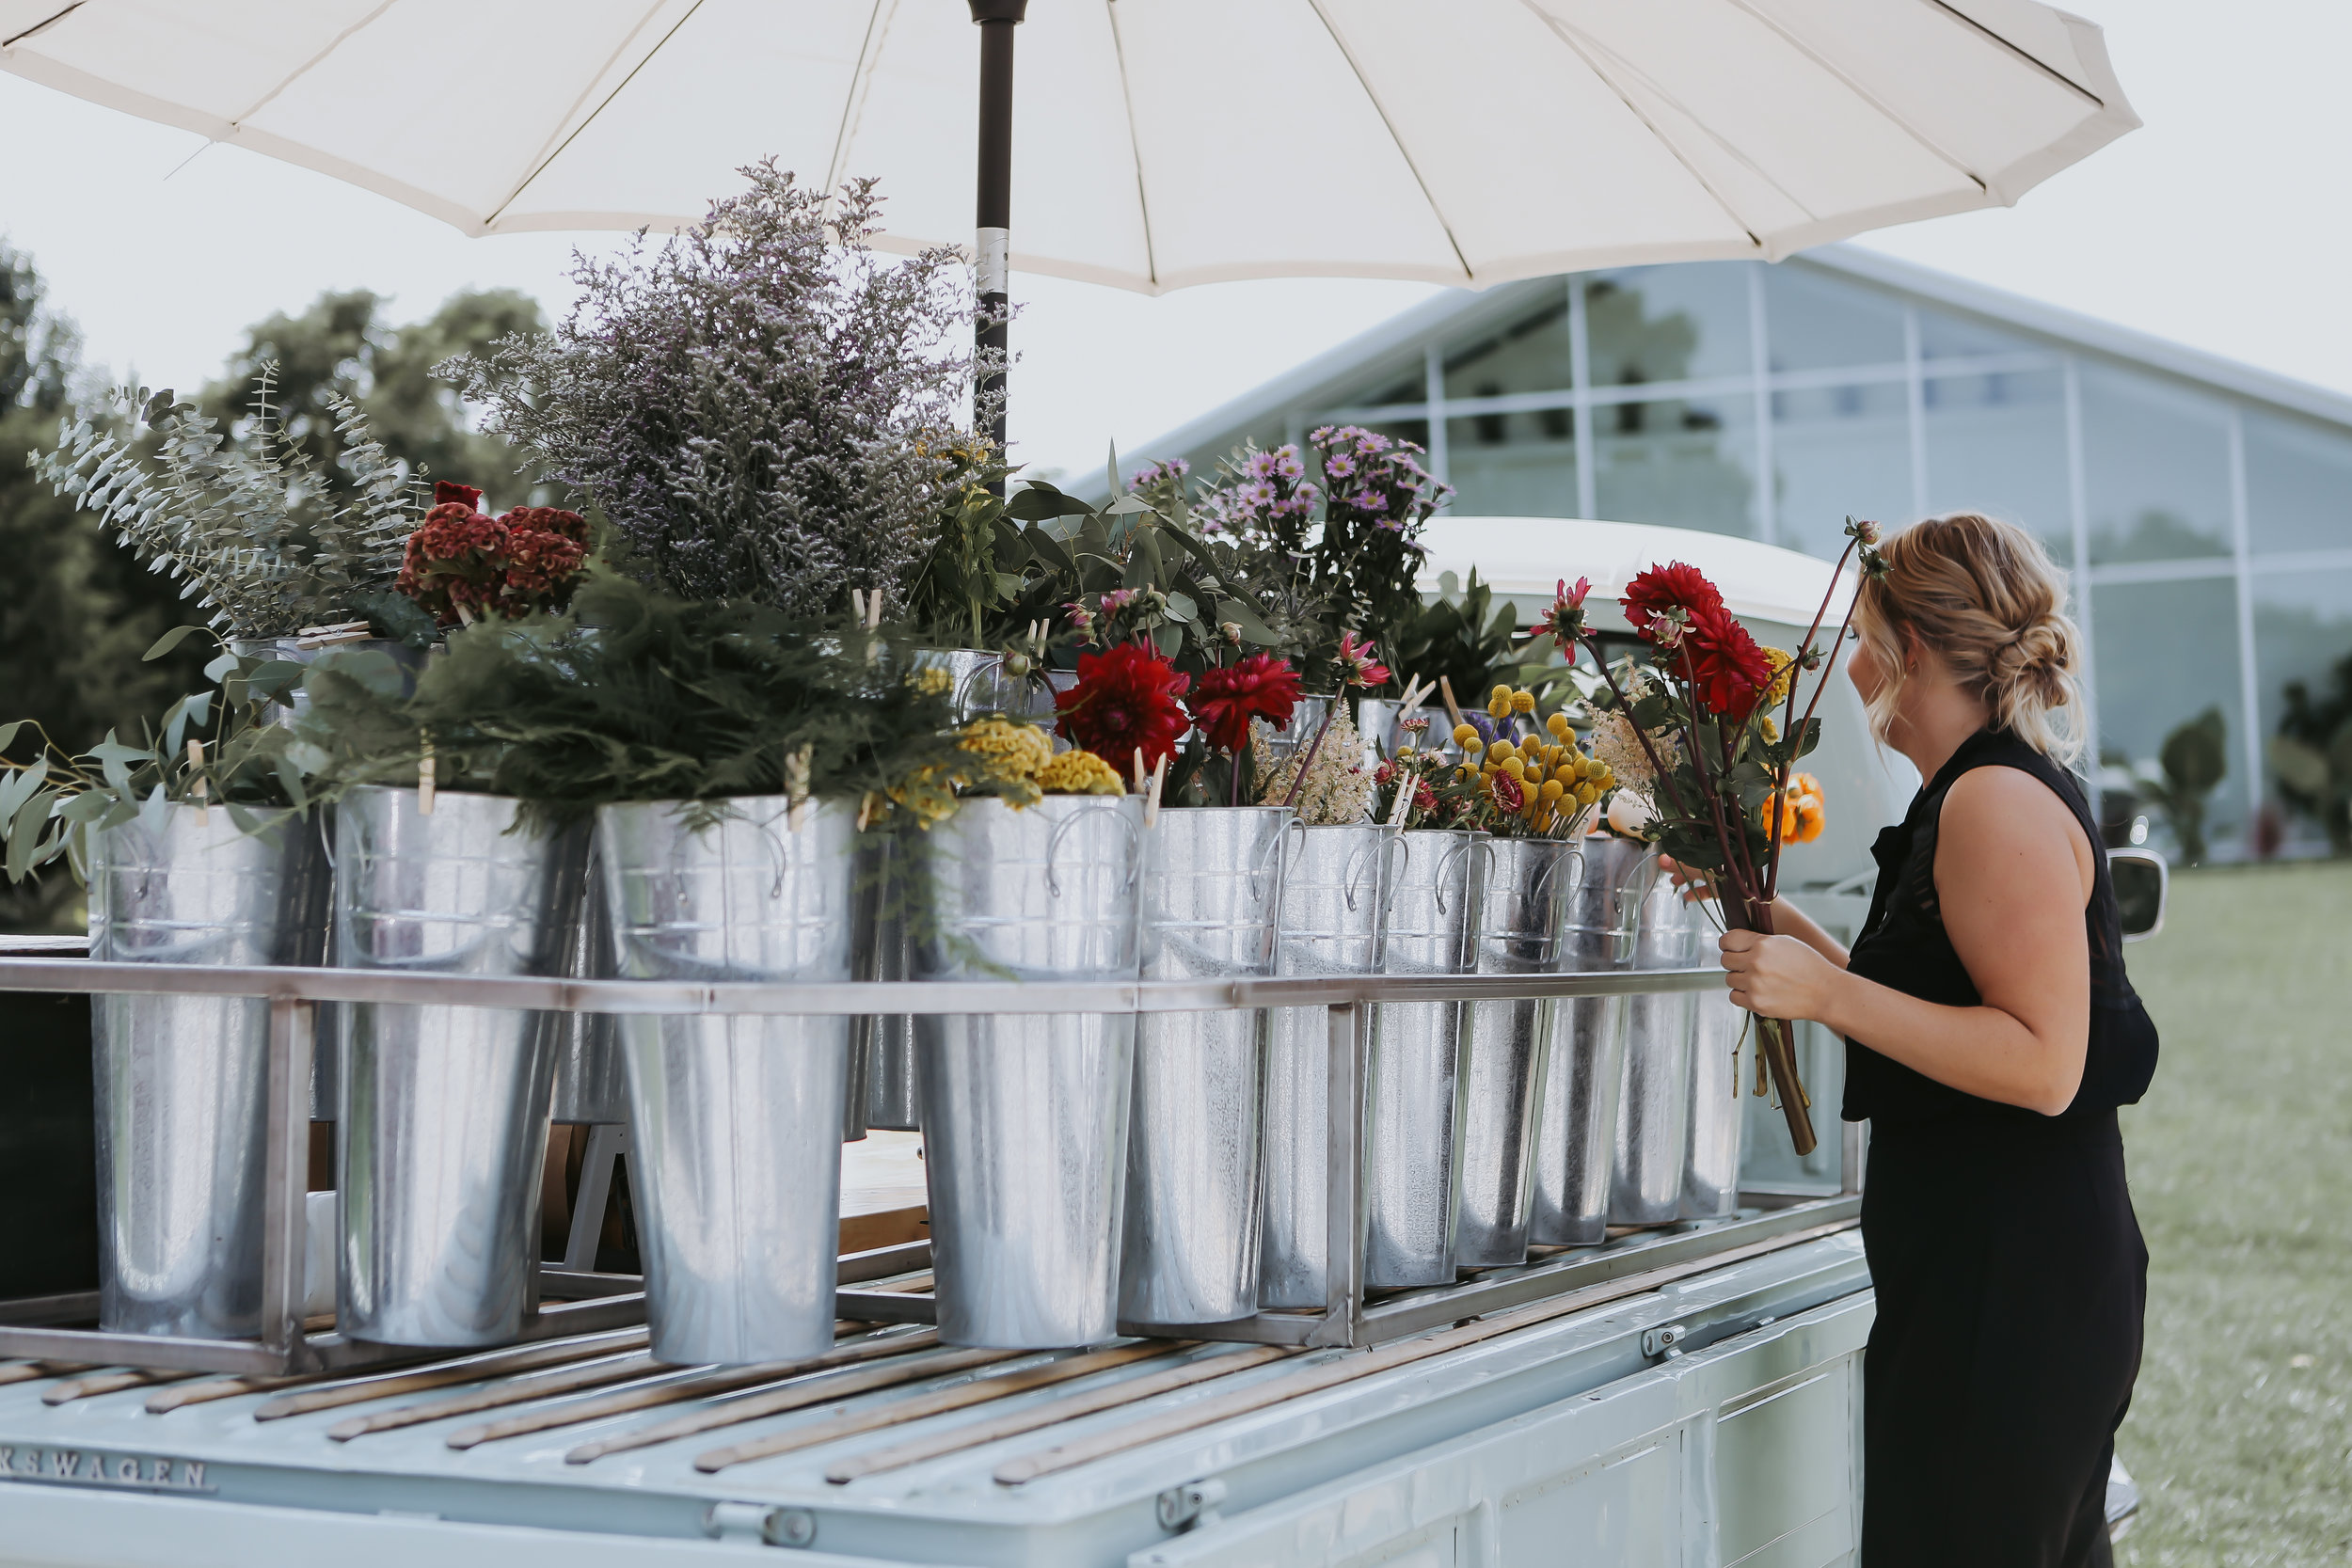 A bride makes the bouquet for her partner at Ozark Mtn. Flower Truck's flower bar brought to the venue.